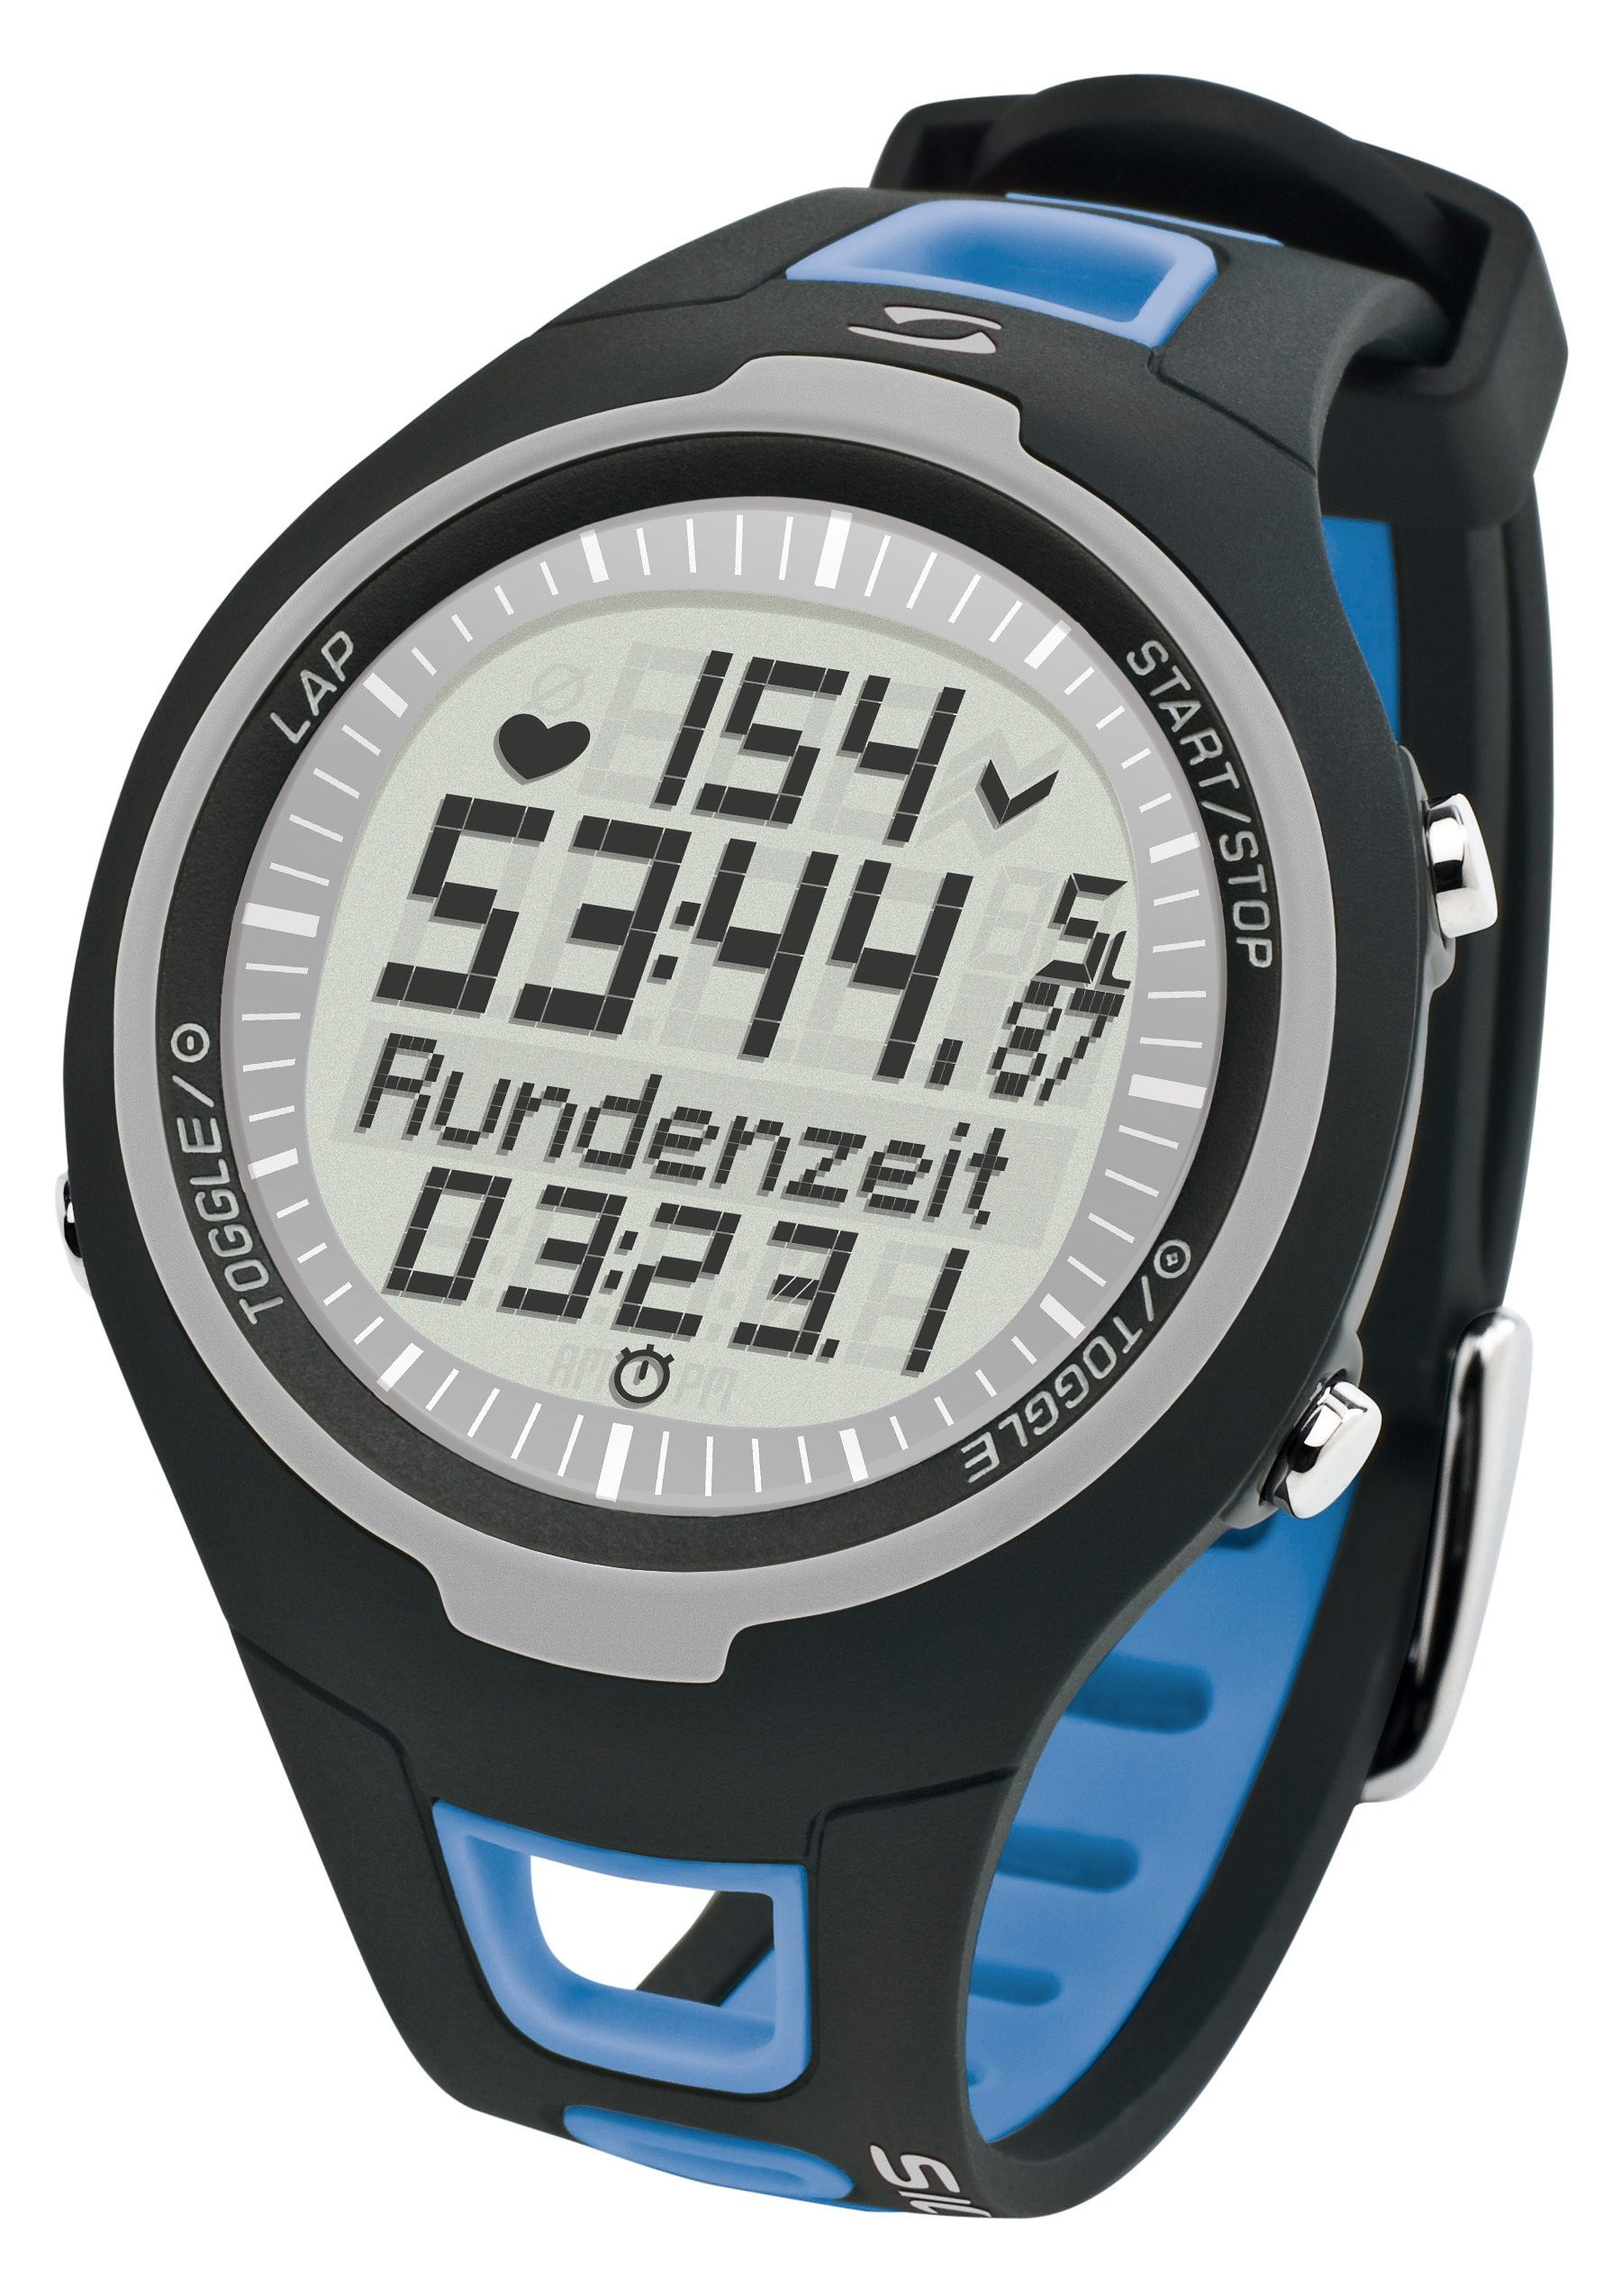 Sigma Sport Pulsuhr inkl. Brustgurt, »PC 15.11 blue«